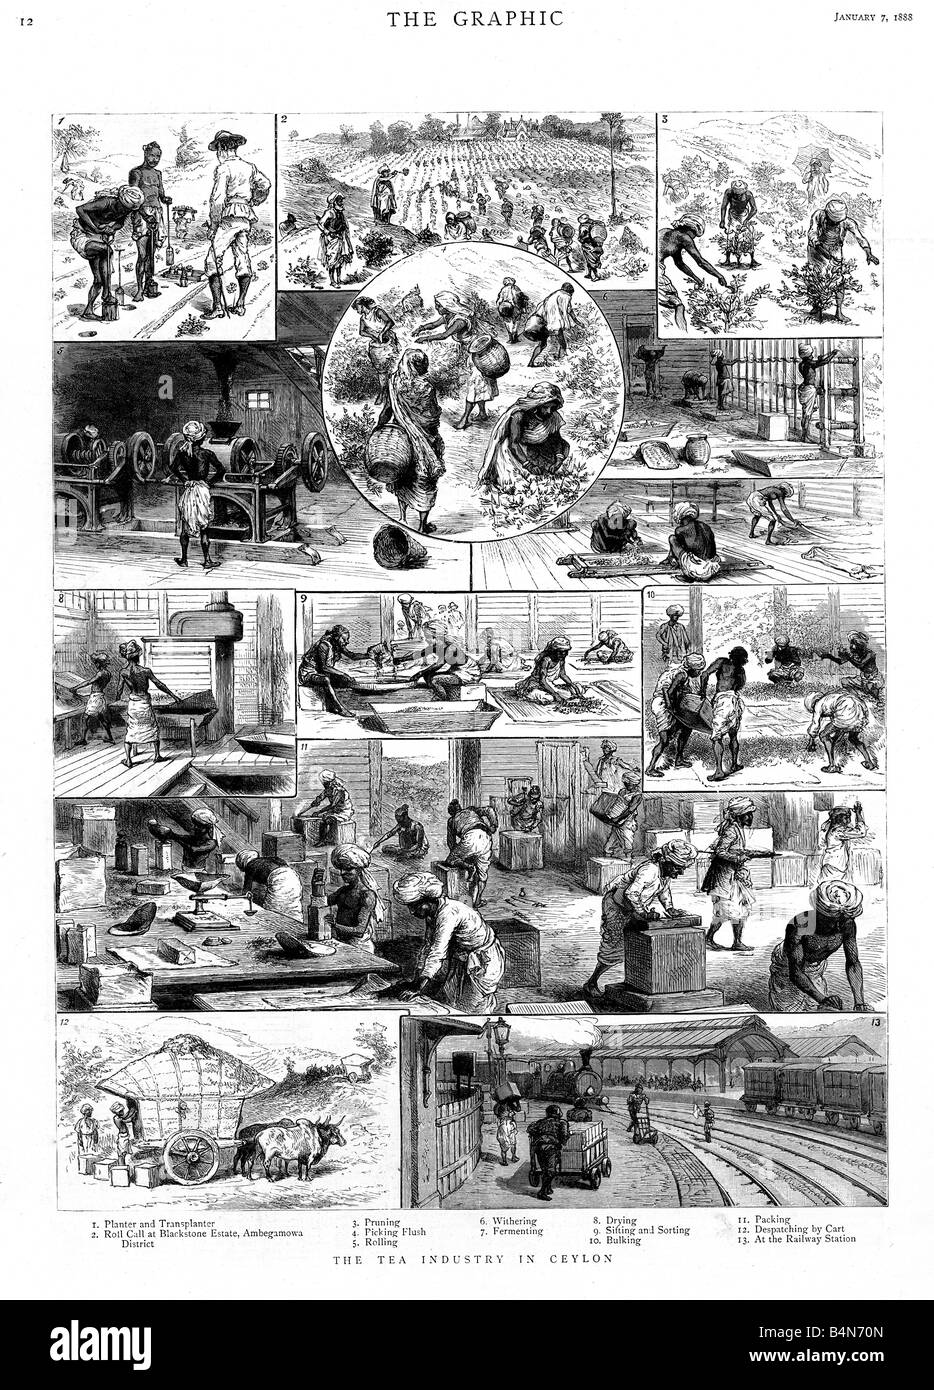 Tea Production in Ceylon 1888 engraving of the plantation industry in what is now Sri Lanka - Stock Image